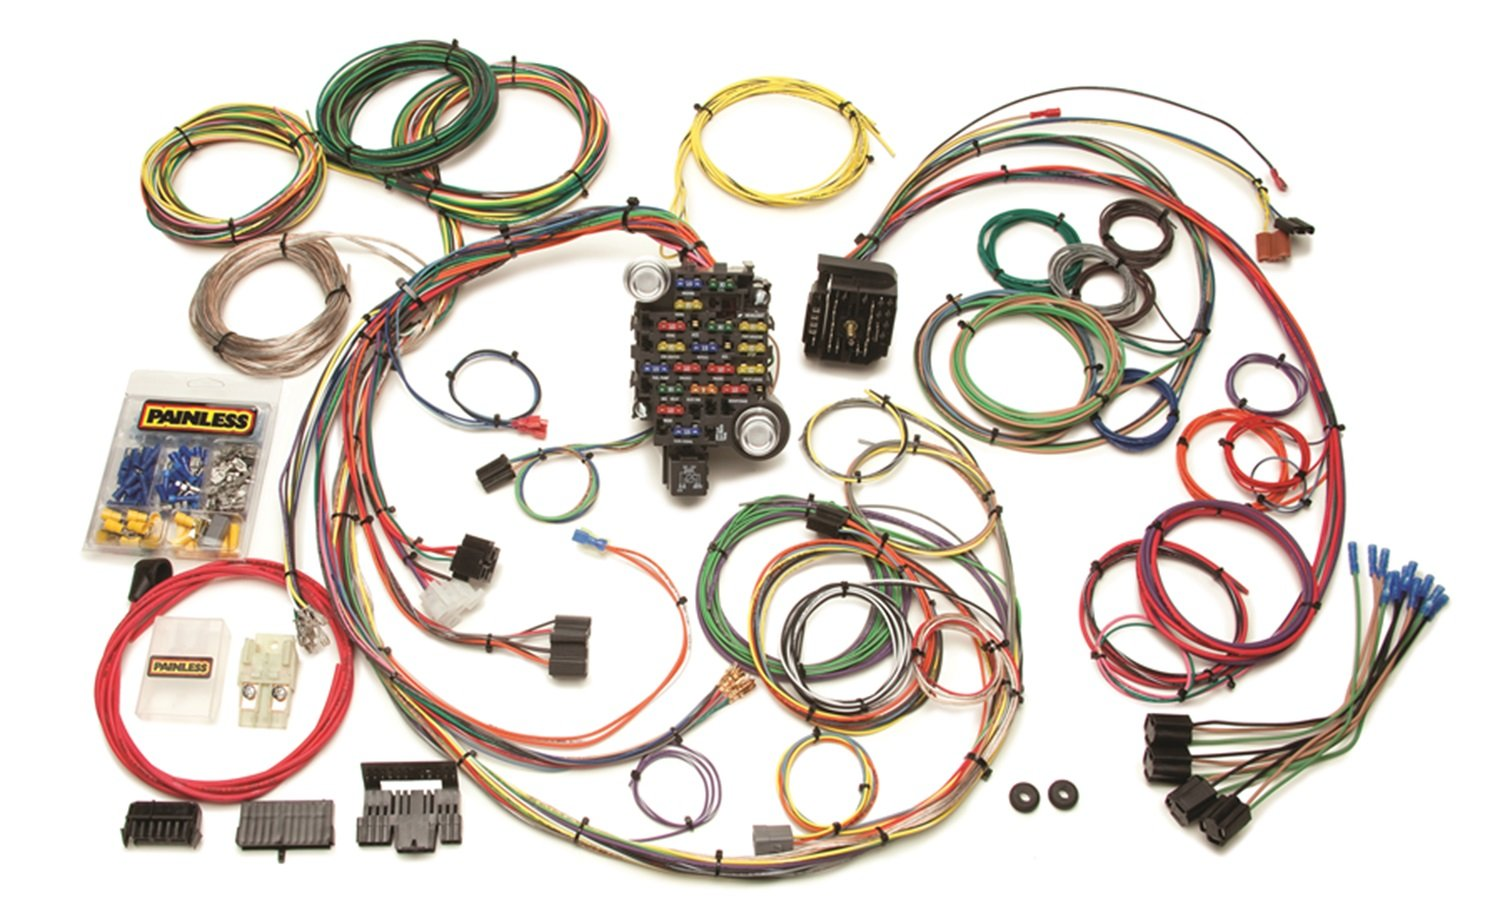 71RvMxx3qDL._SL1500_ amazon com painless 20102 custom wiring harness automotive painless wiring harness at suagrazia.org